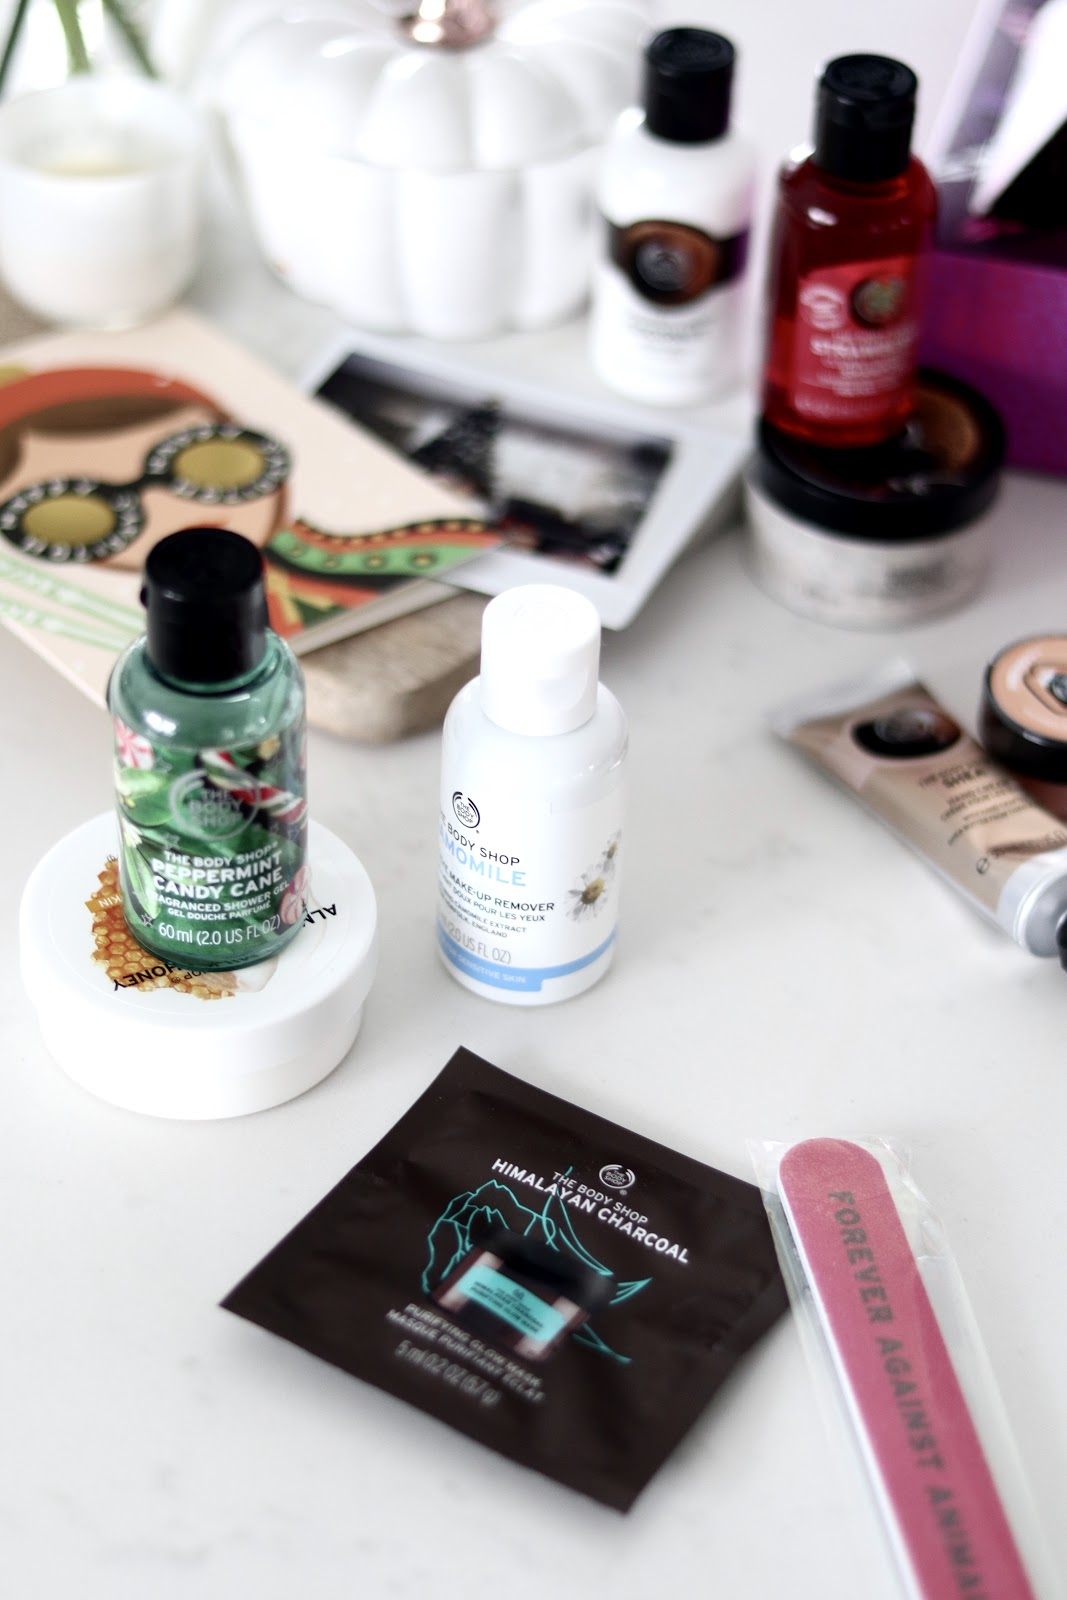 Blogger holiday giveaway 2018, peppermint candy cane shower gel, chamomile make up remover, The Body Shop